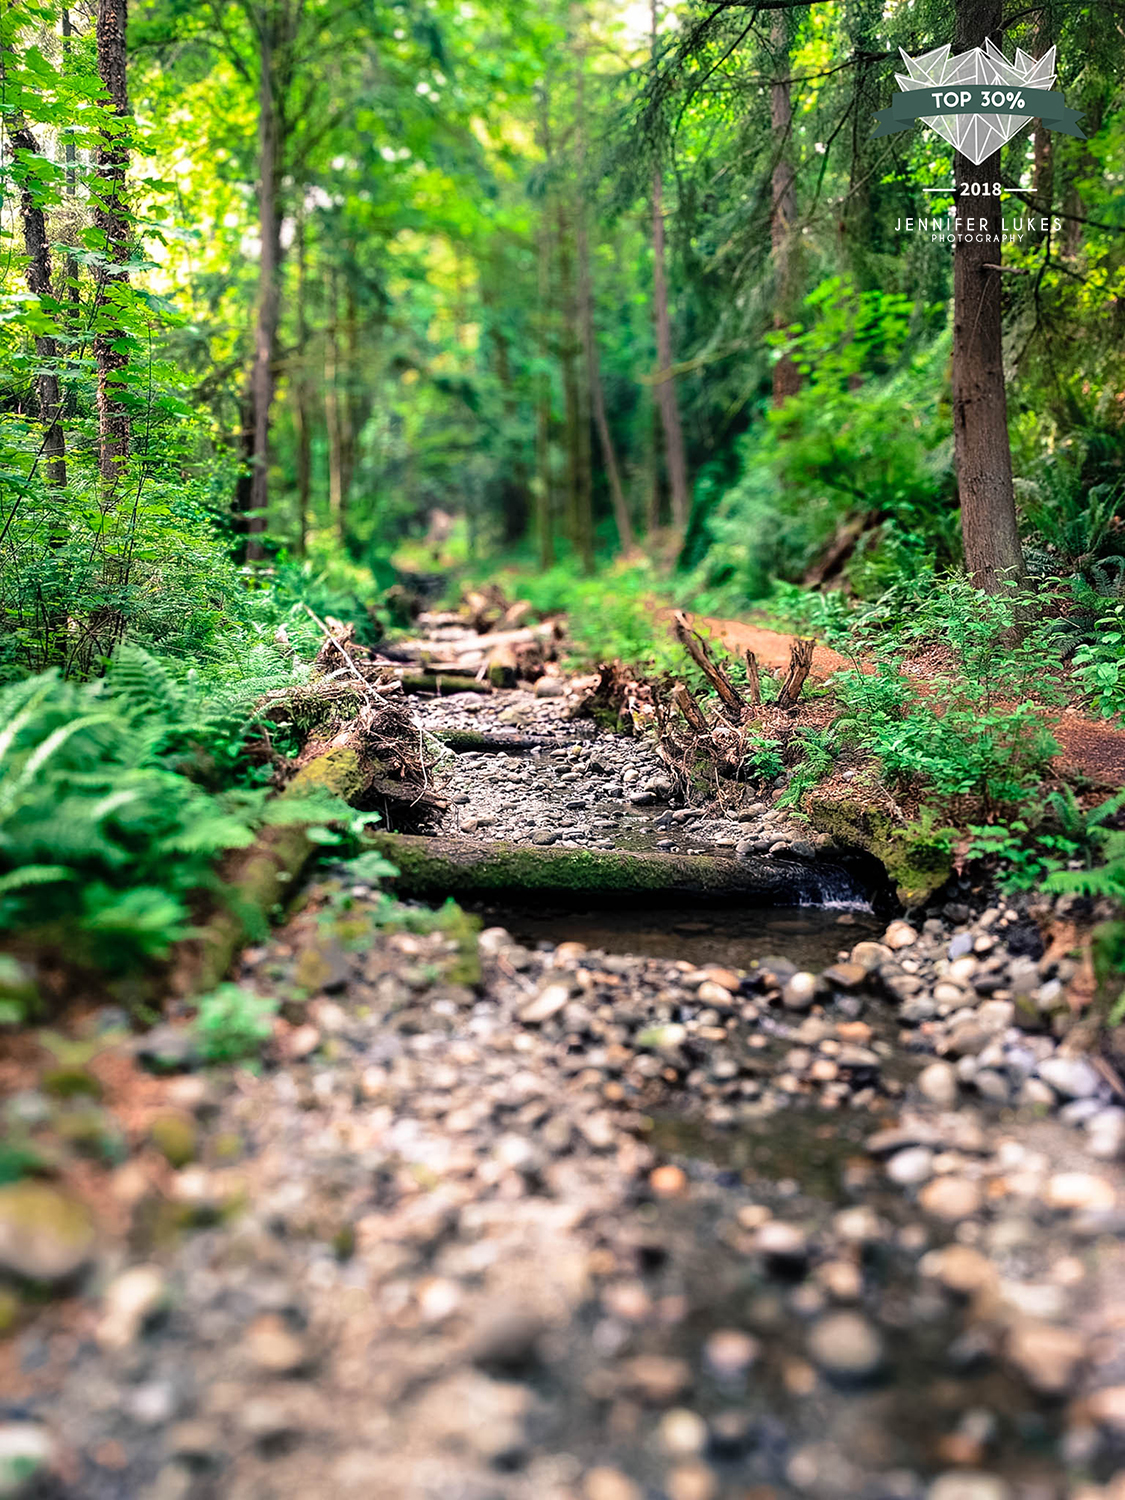 Top 30% award for phone photography of a Bellevue City Maintained Trail.